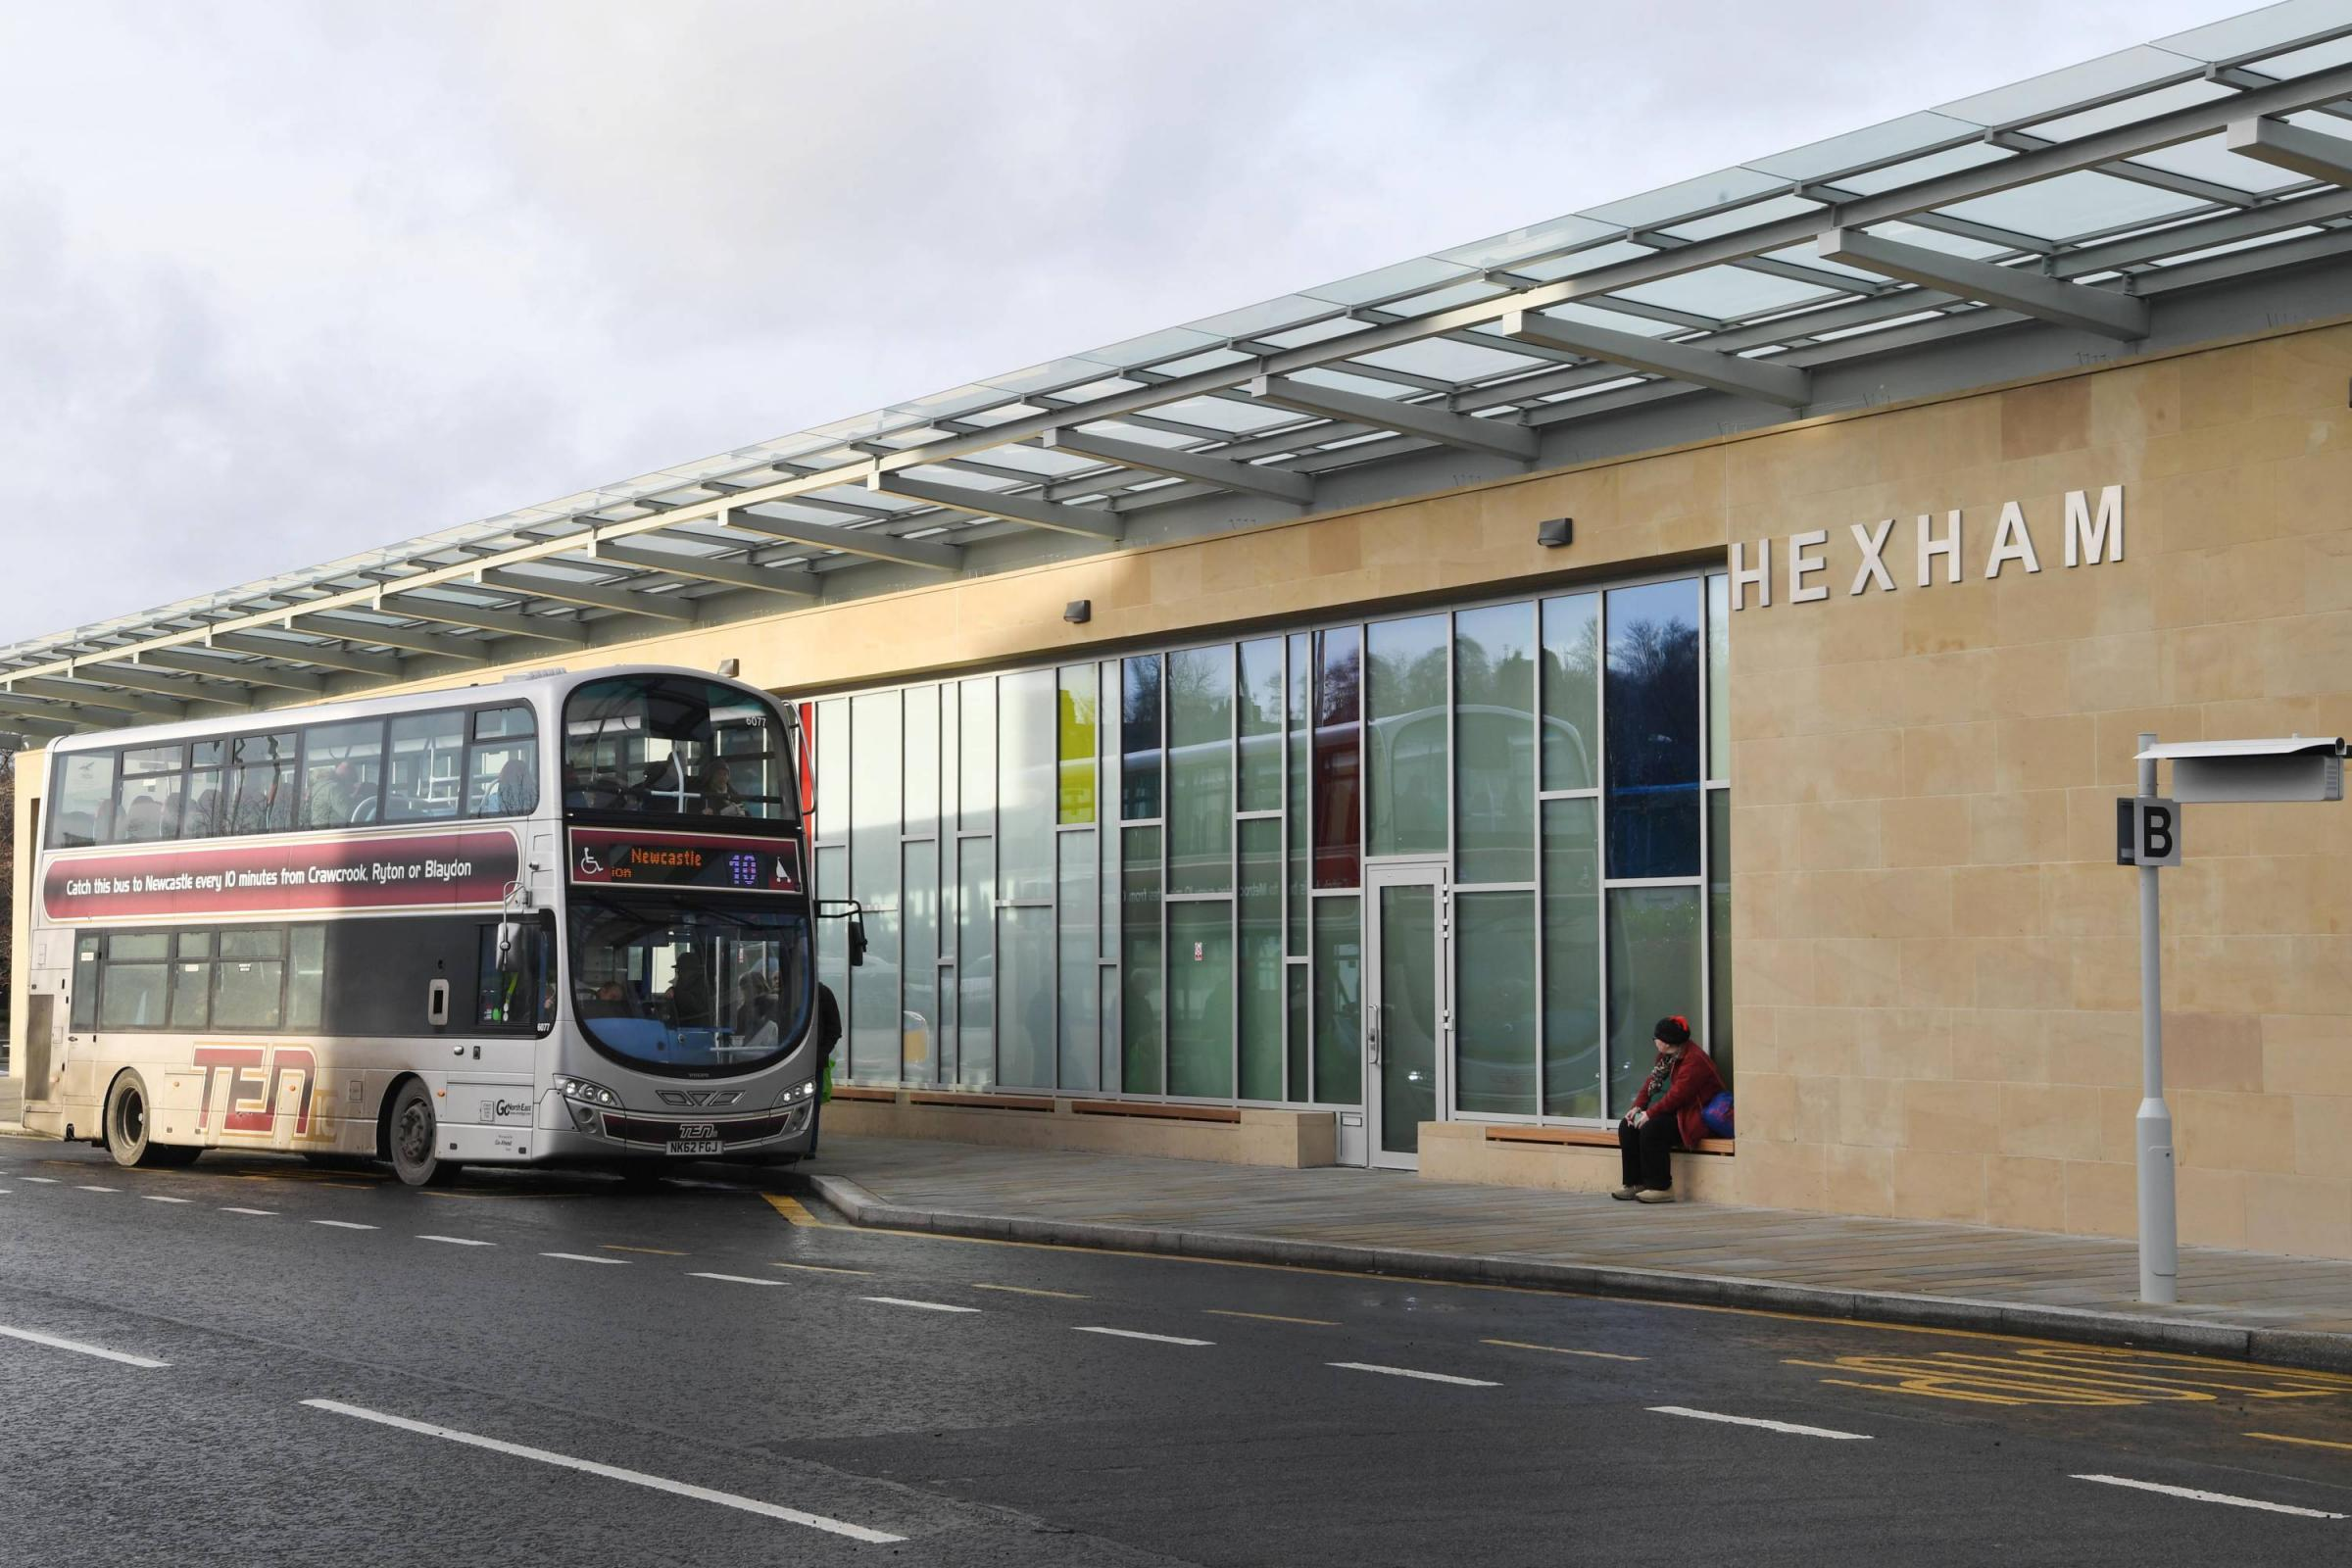 K031730 Bus Station. Hexham Bus Station. Buses. Transport. Go North East. THURSDAY 12TH JANUARY 2017. KATE BUCKINGHAM.